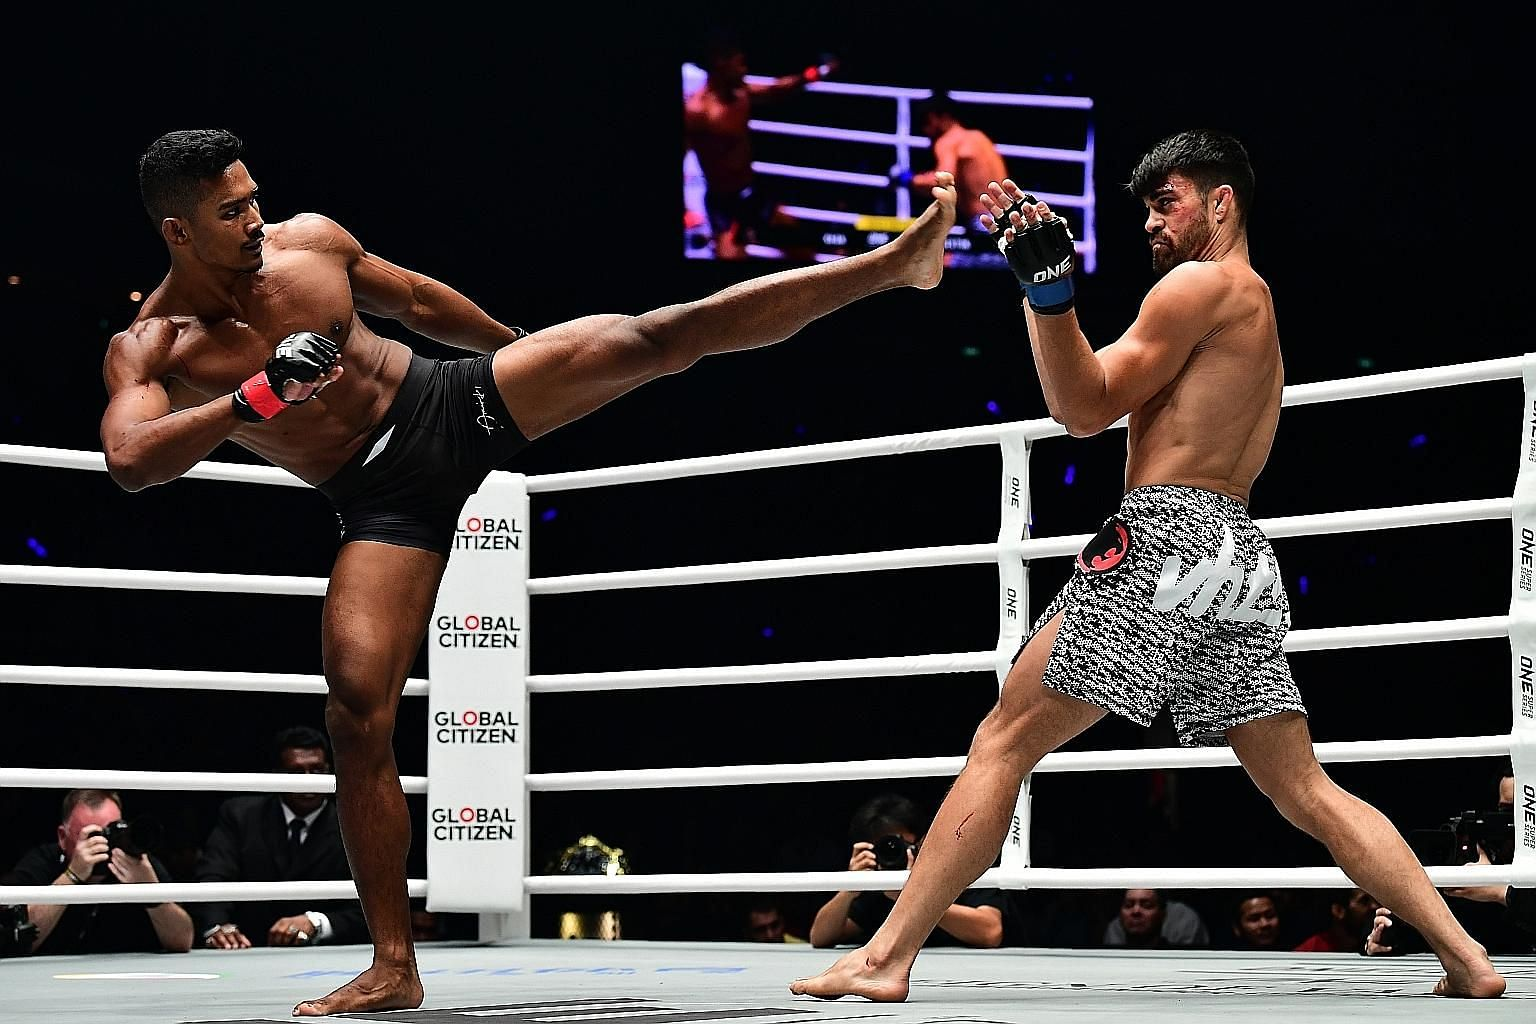 Singaporean Amir Khan aiming a kick at Costa Rican Ariel Sexton in One's lightweight Grand Prix quarter-finals last night. Sexton won the match by submission.